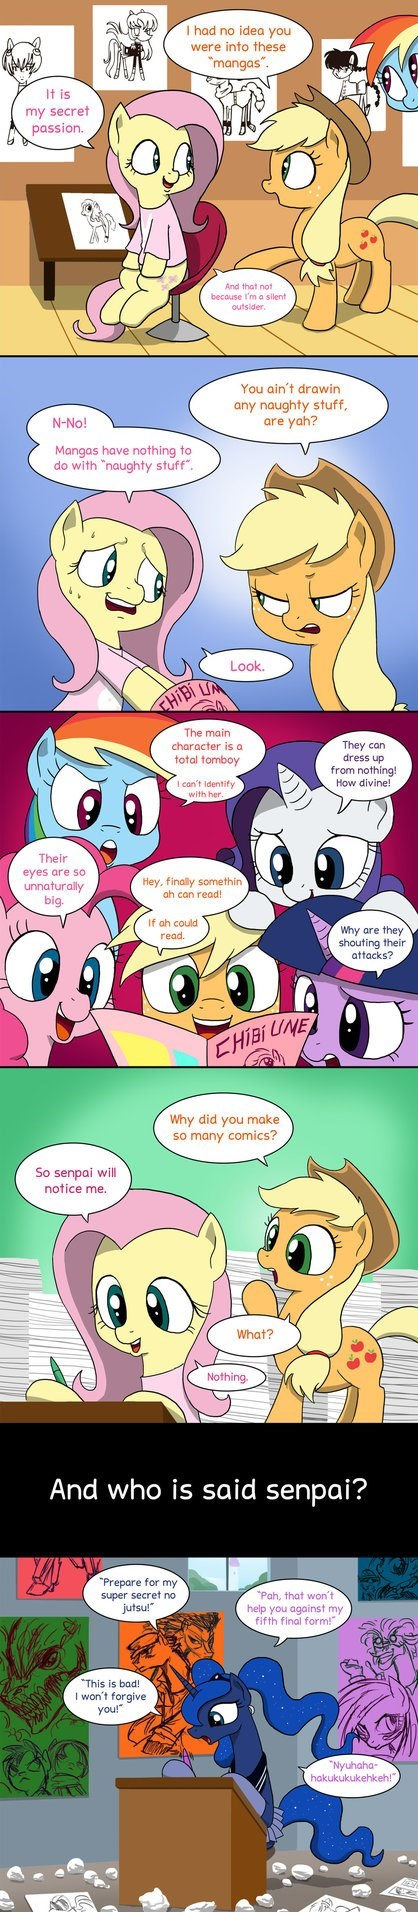 princess luna,mane six,otaku